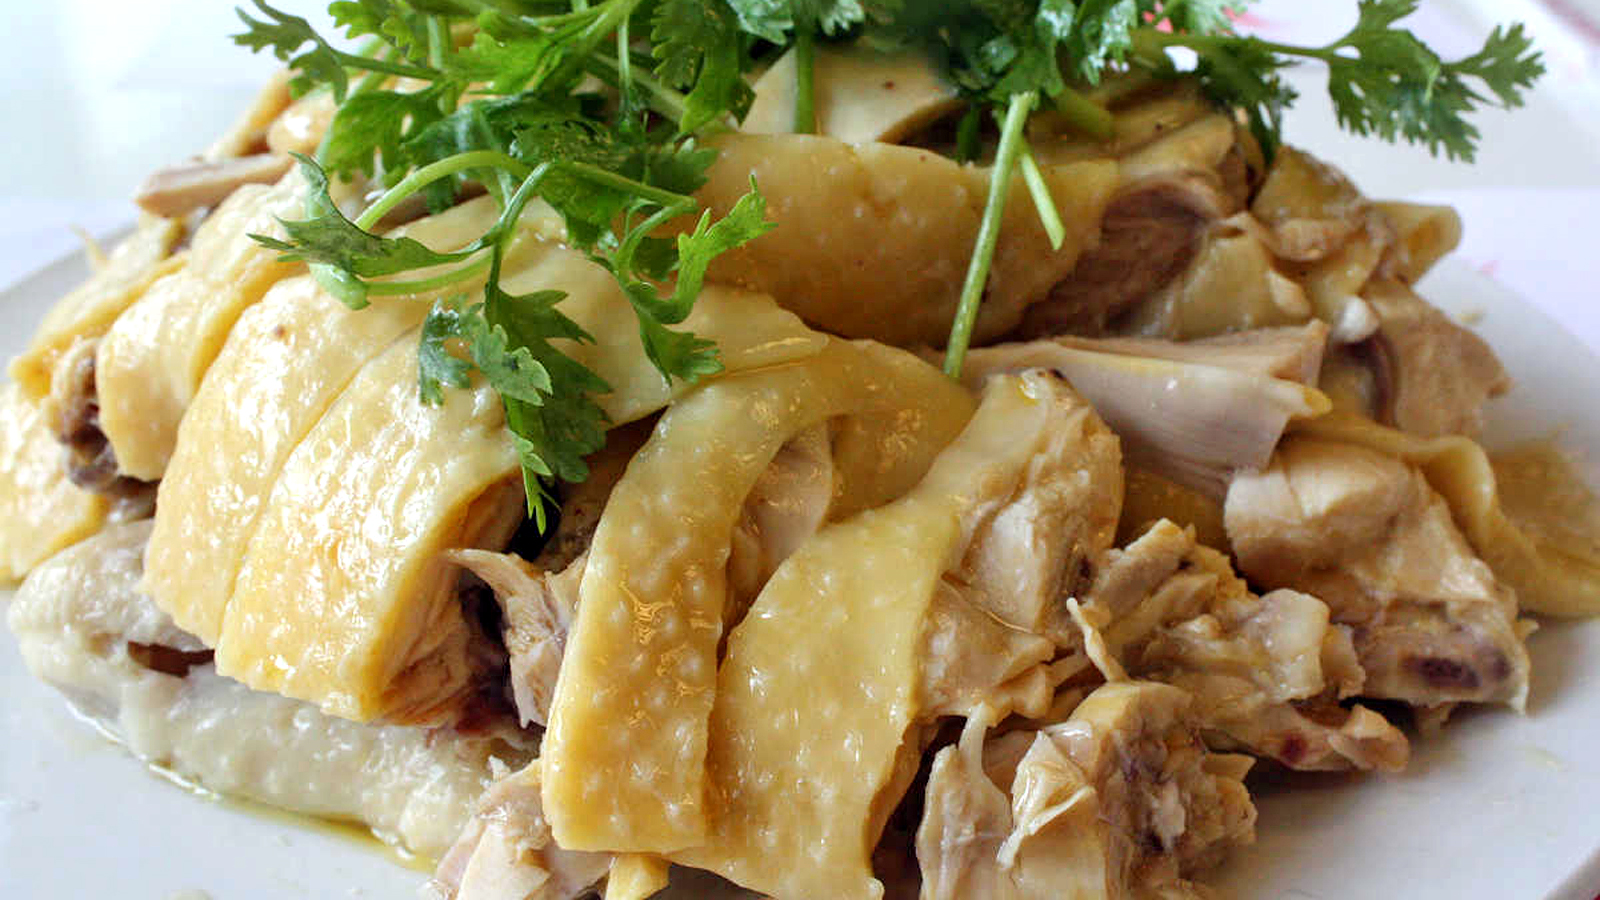 American chinese food is real chinese food opinion cnn travel forumfinder Image collections